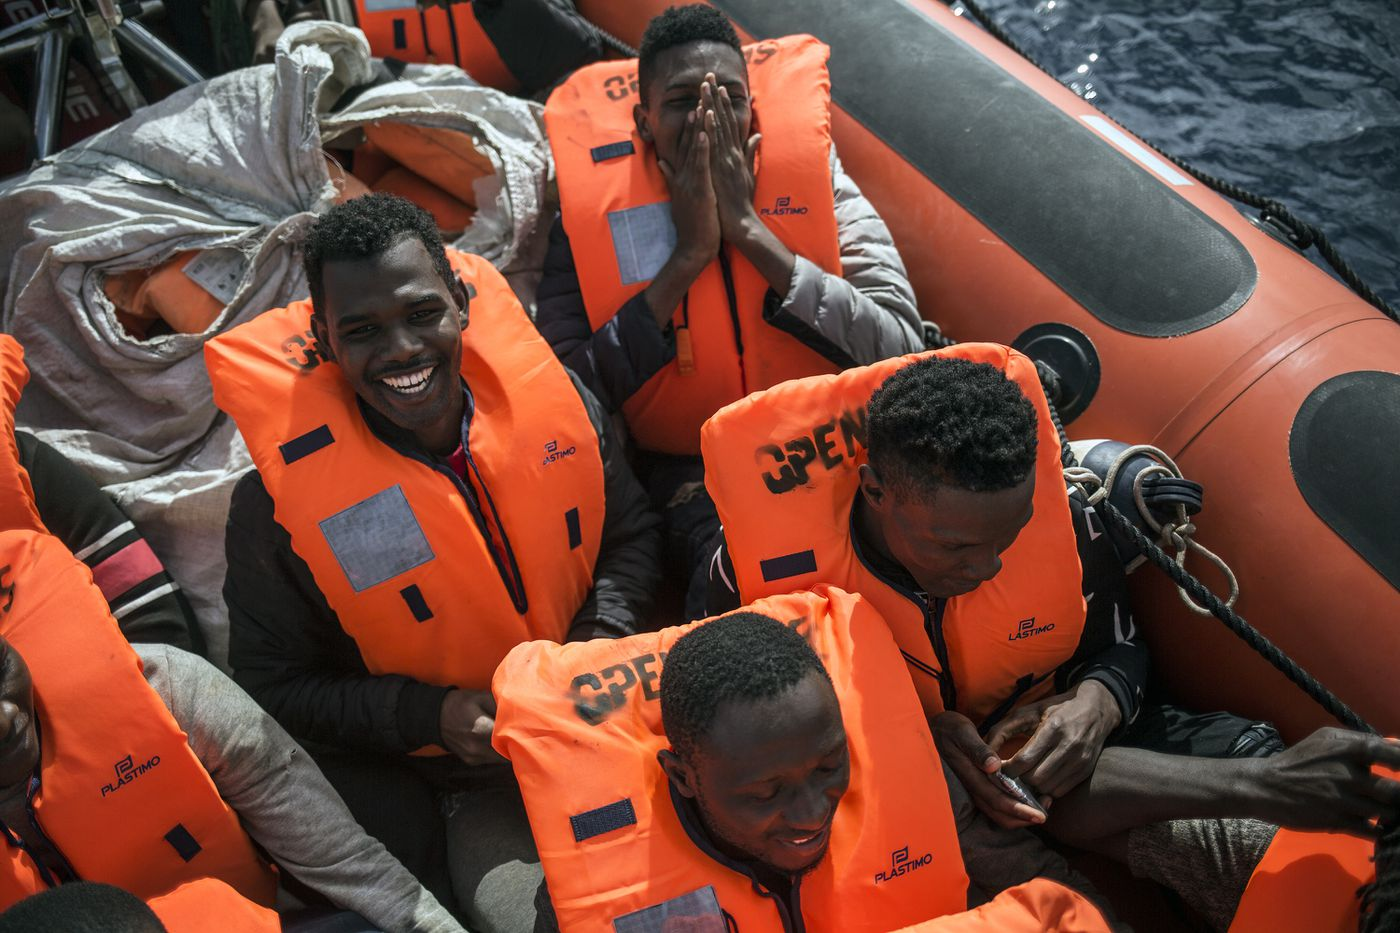 Migrants celebrate on a rescue boat from the Spanish NGO Pro activa Open Arms after being spotted and rescued them at Alboran Sea, about 40 miles (64 kms) from the Spanish coasts, on Thursday, Oct. 11 2018. The Open Arms is now based at Motril port in order to start operating in the western Mediterranean area. (AP Photo/Javier Fergo)